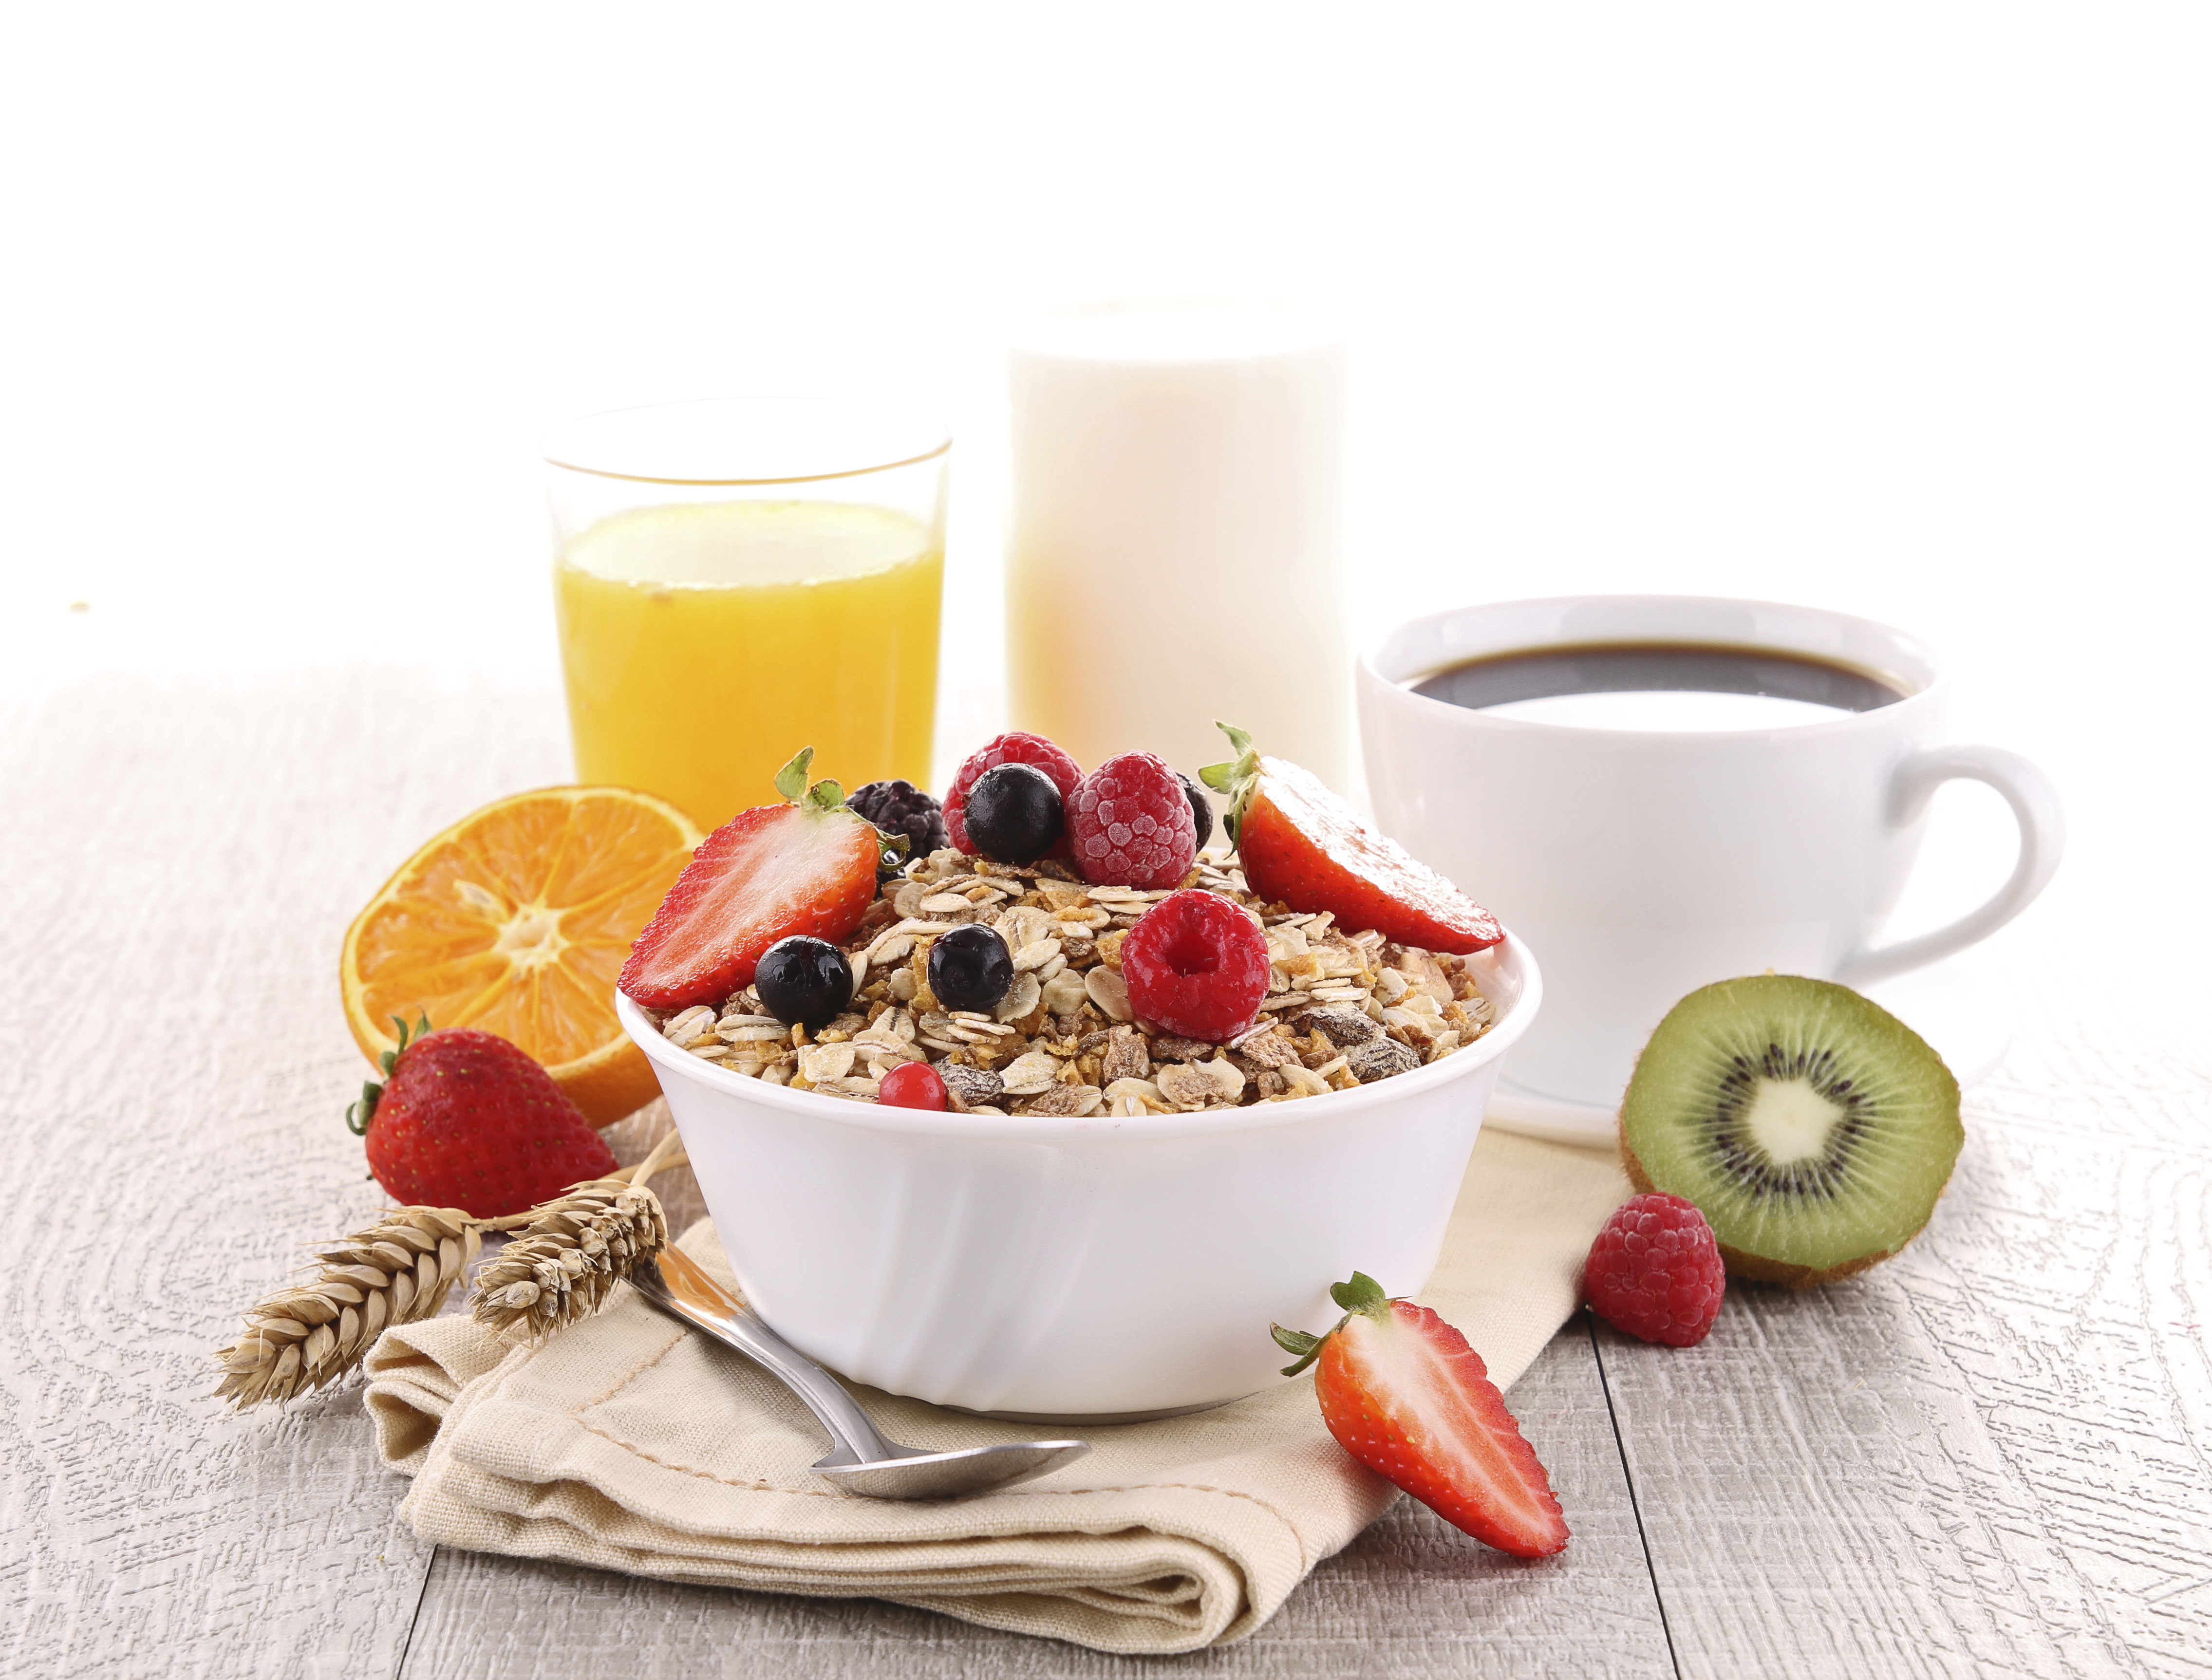 Perfect Healthy Breakfast  Is there an ideal breakfast time that is more advantageous